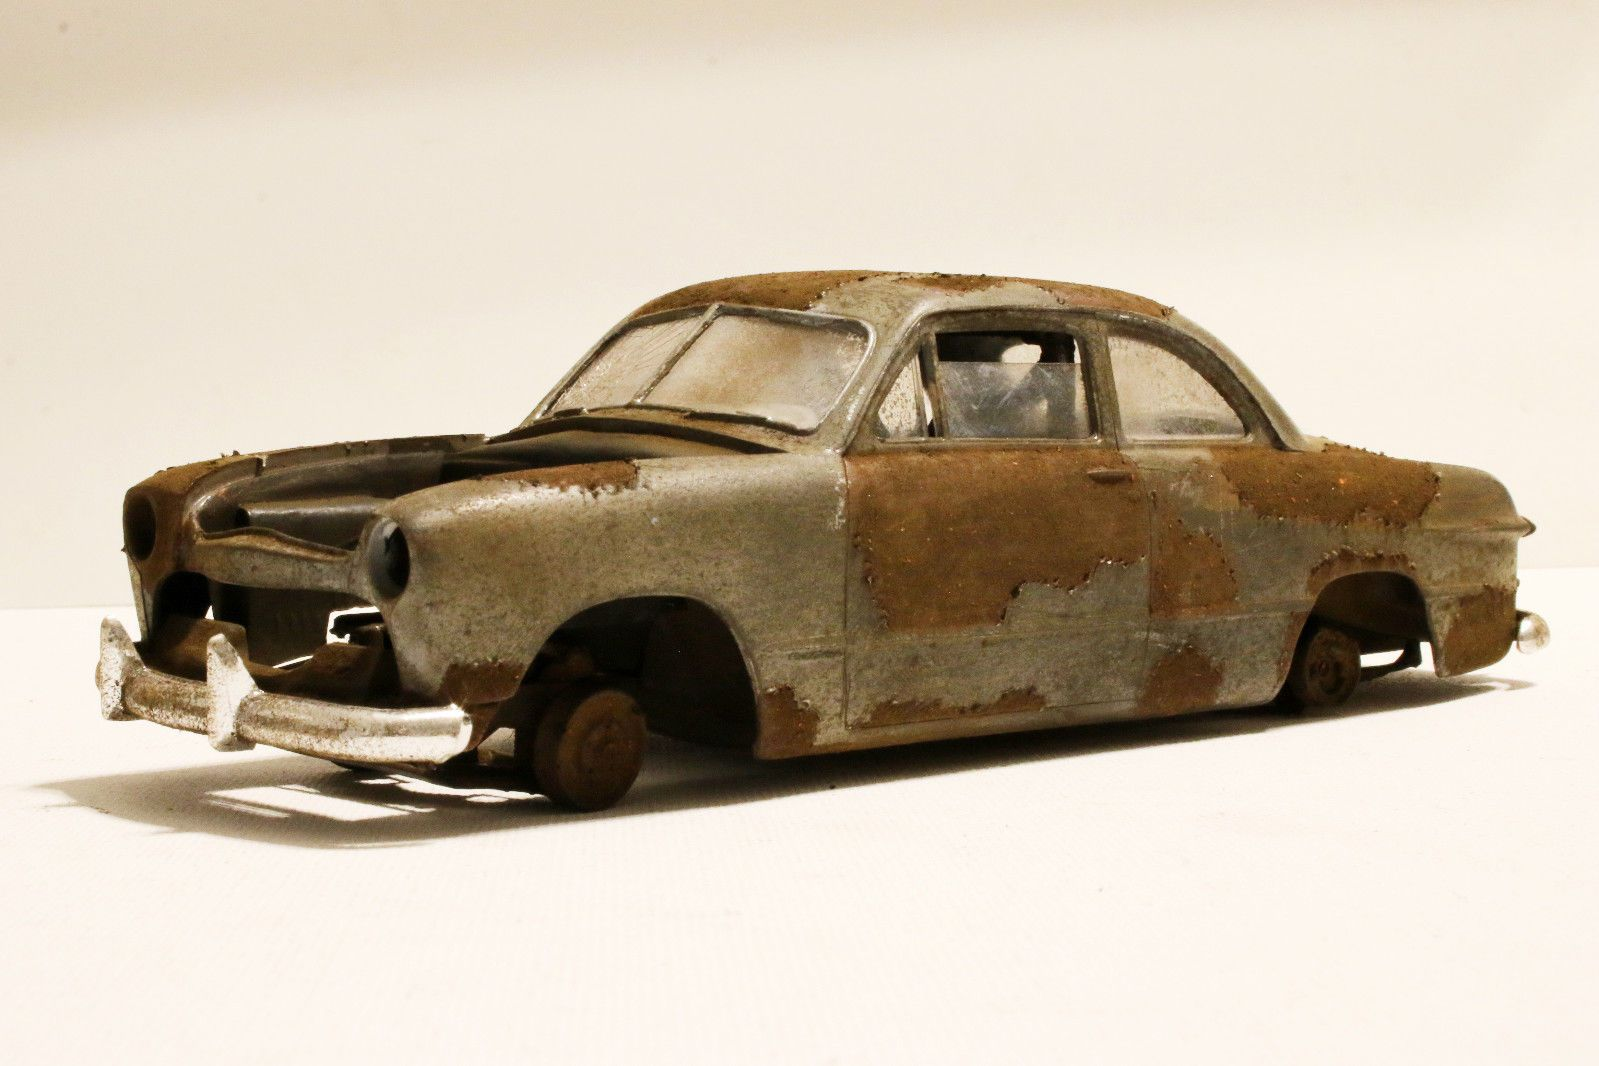 AMT 49 Ford Coupe Junkyard Rusty Weathered Barn Find 1 25